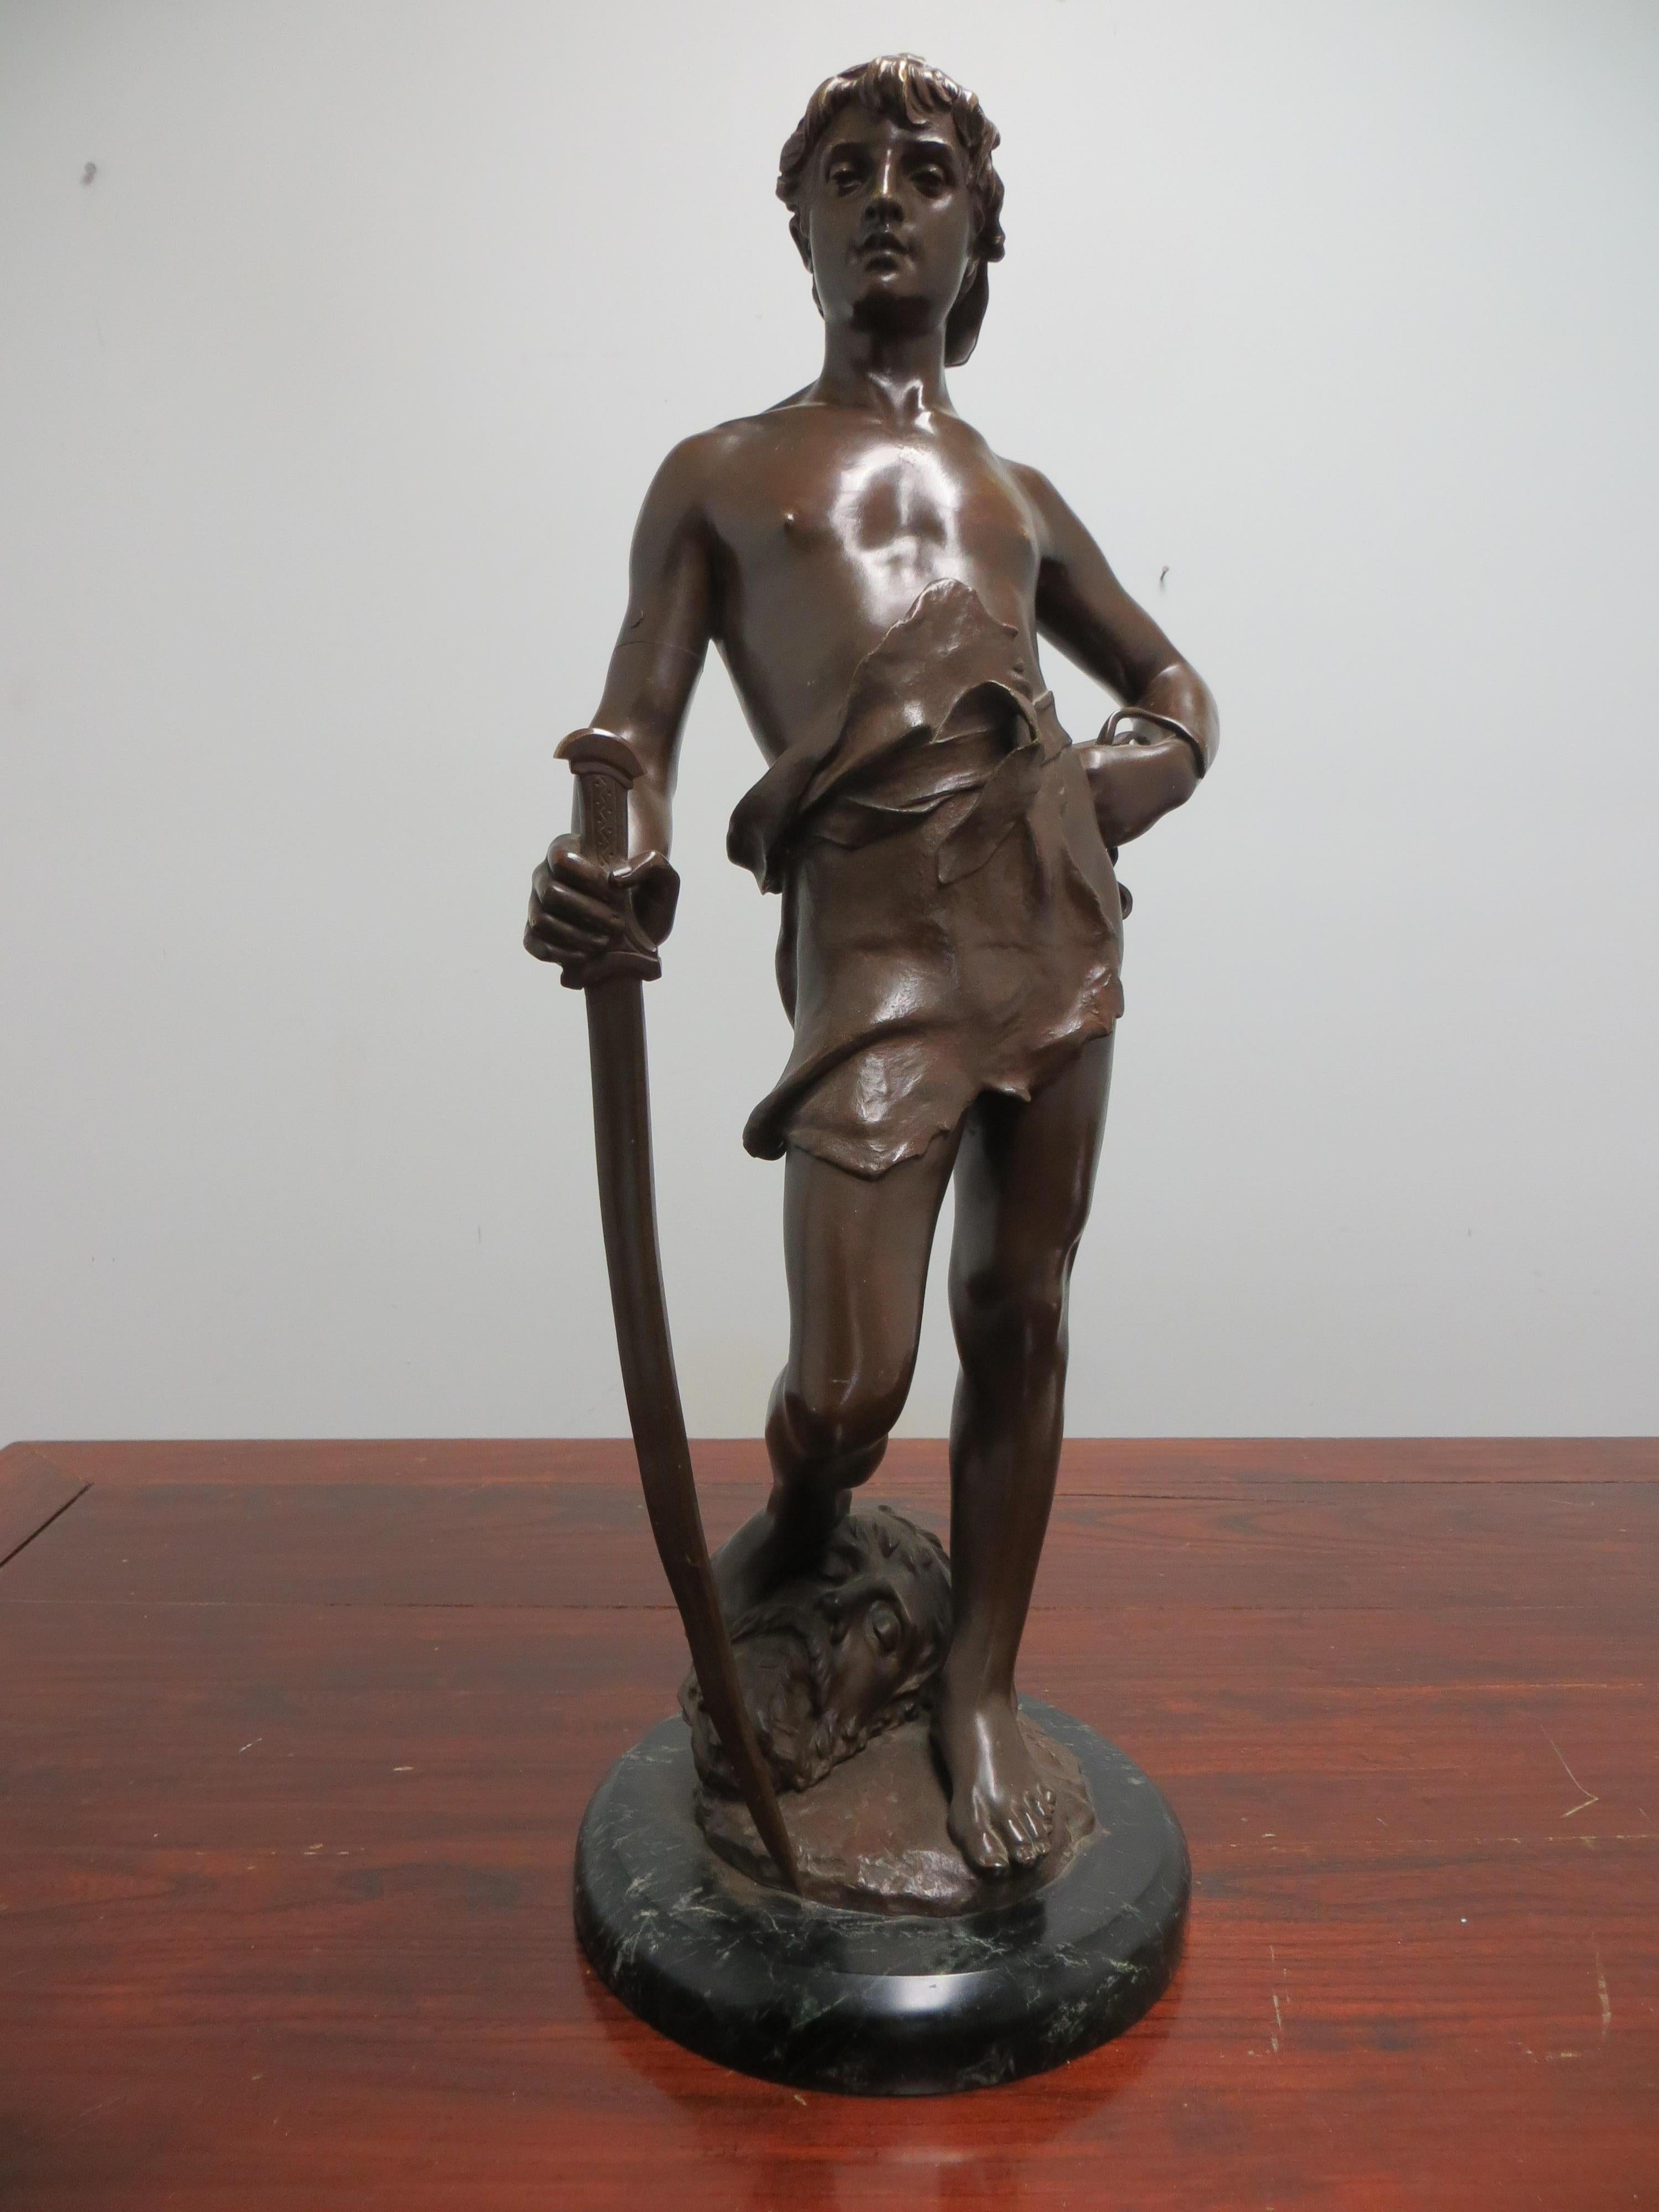 David with the head of Goliath, Bronze